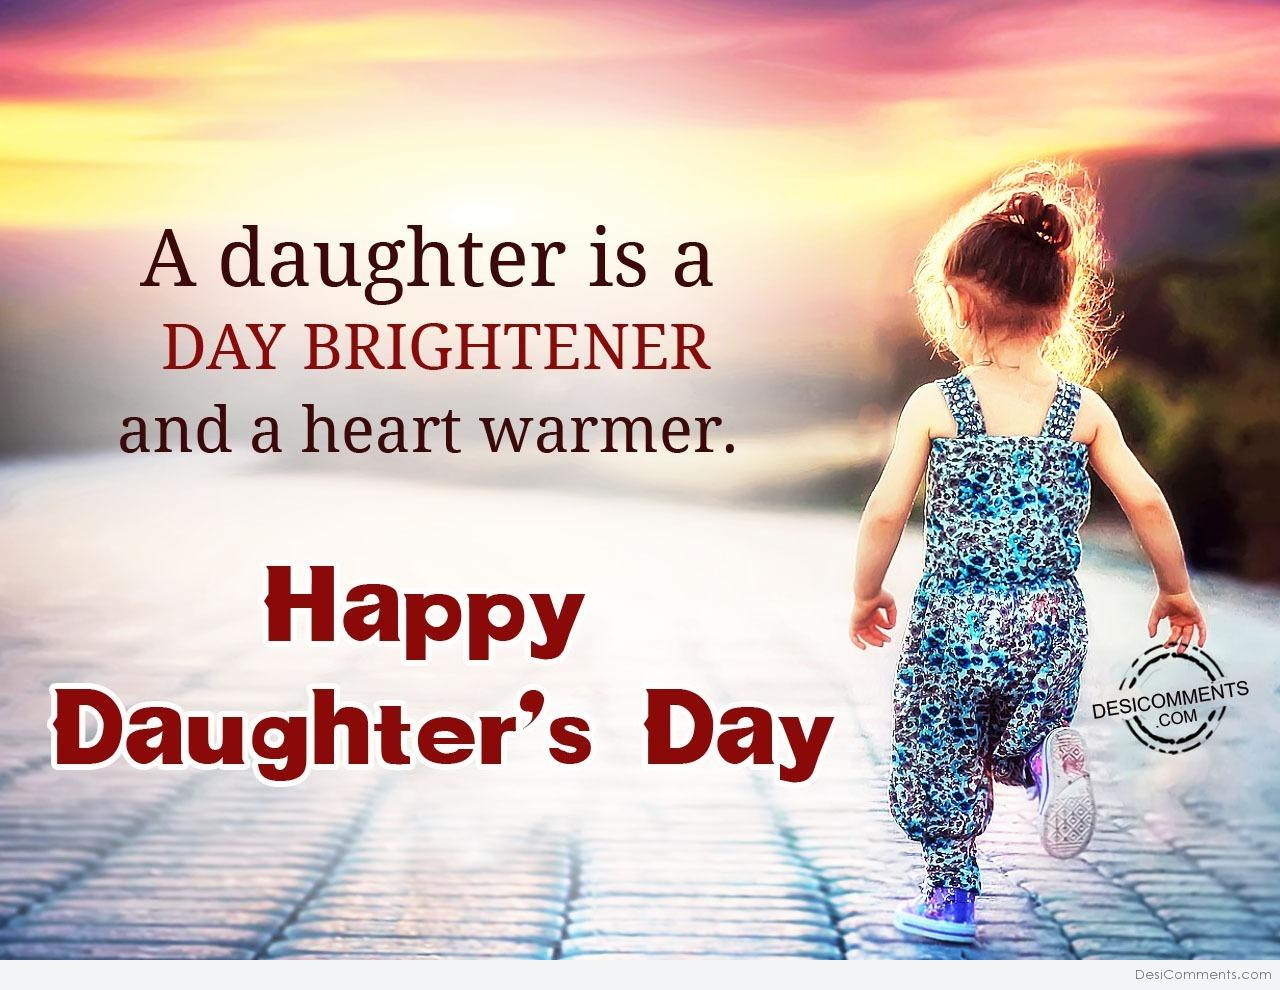 Daughter's Day Pictures, Images, Graphics for Facebook ...